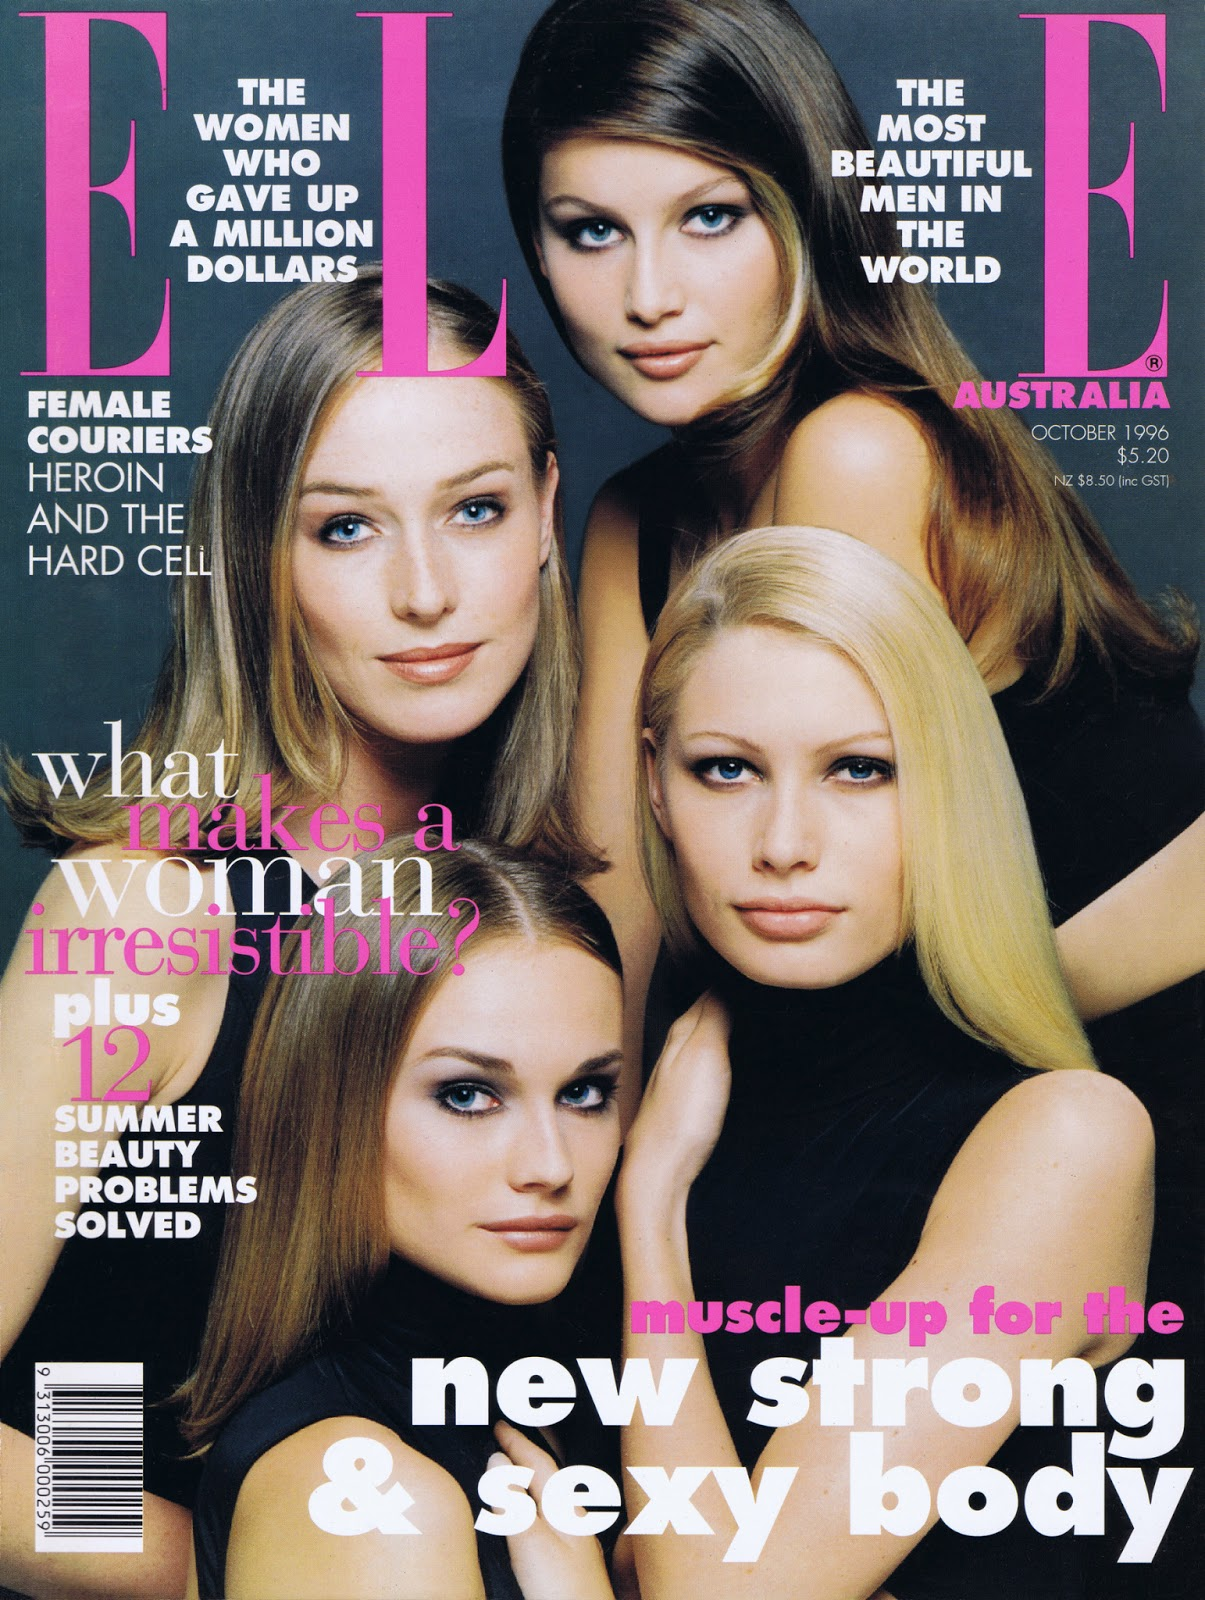 kirsty hume and other models